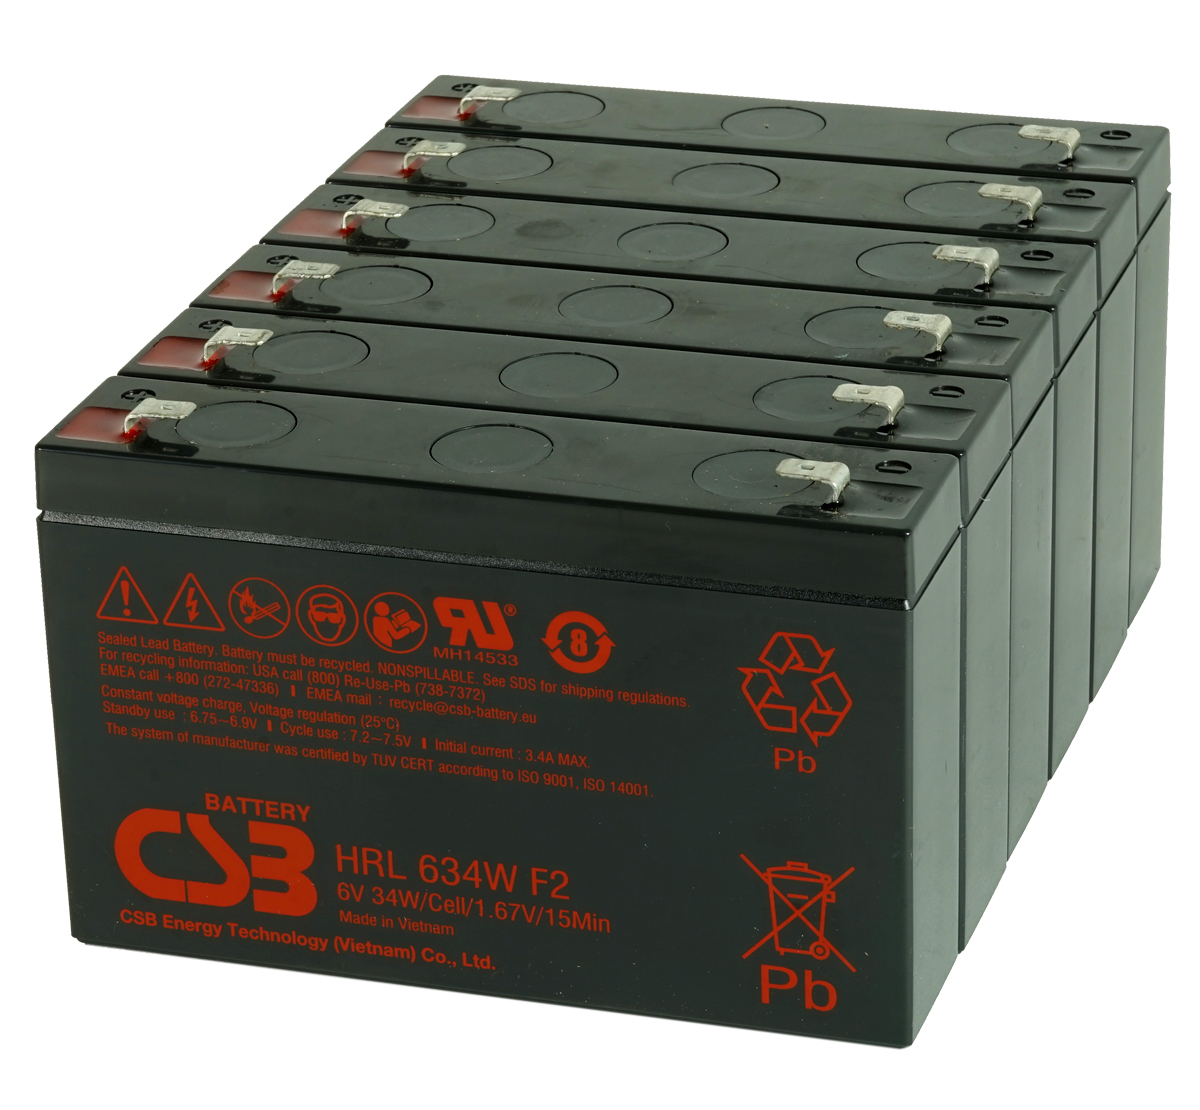 MDS1010 UPS Battery Kit for MGE AB1010